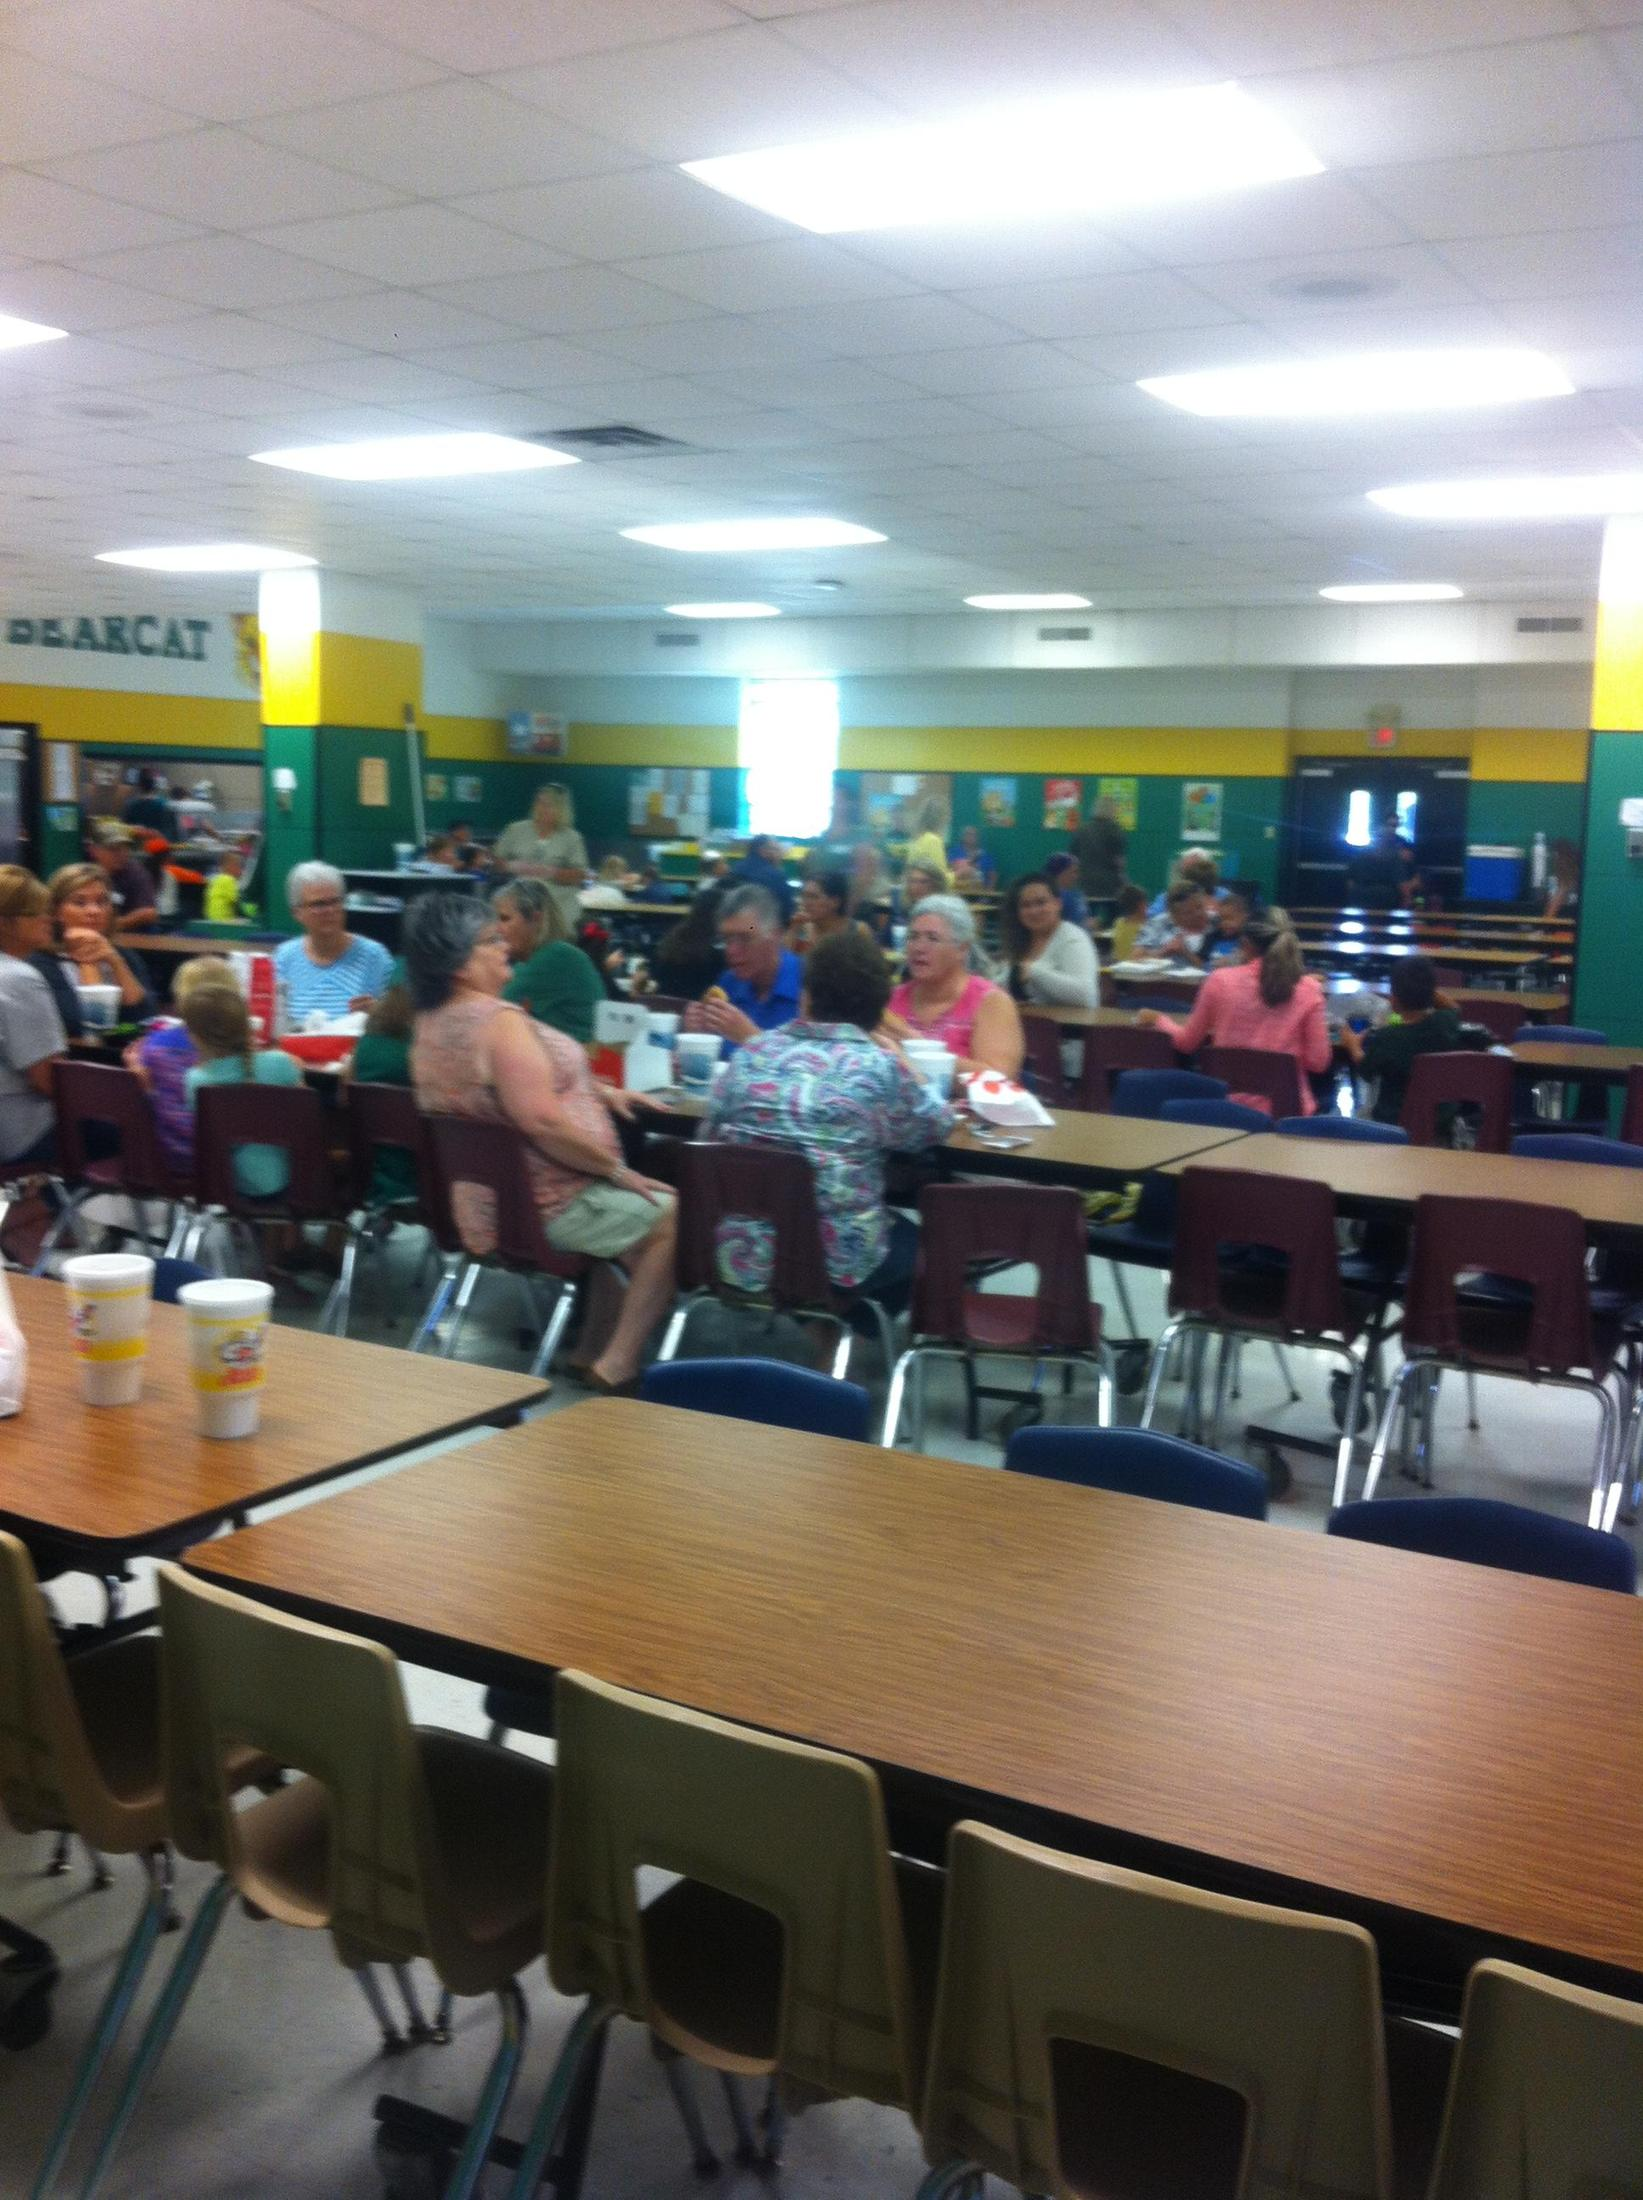 Grandparents sitting at tables for lunch with students.